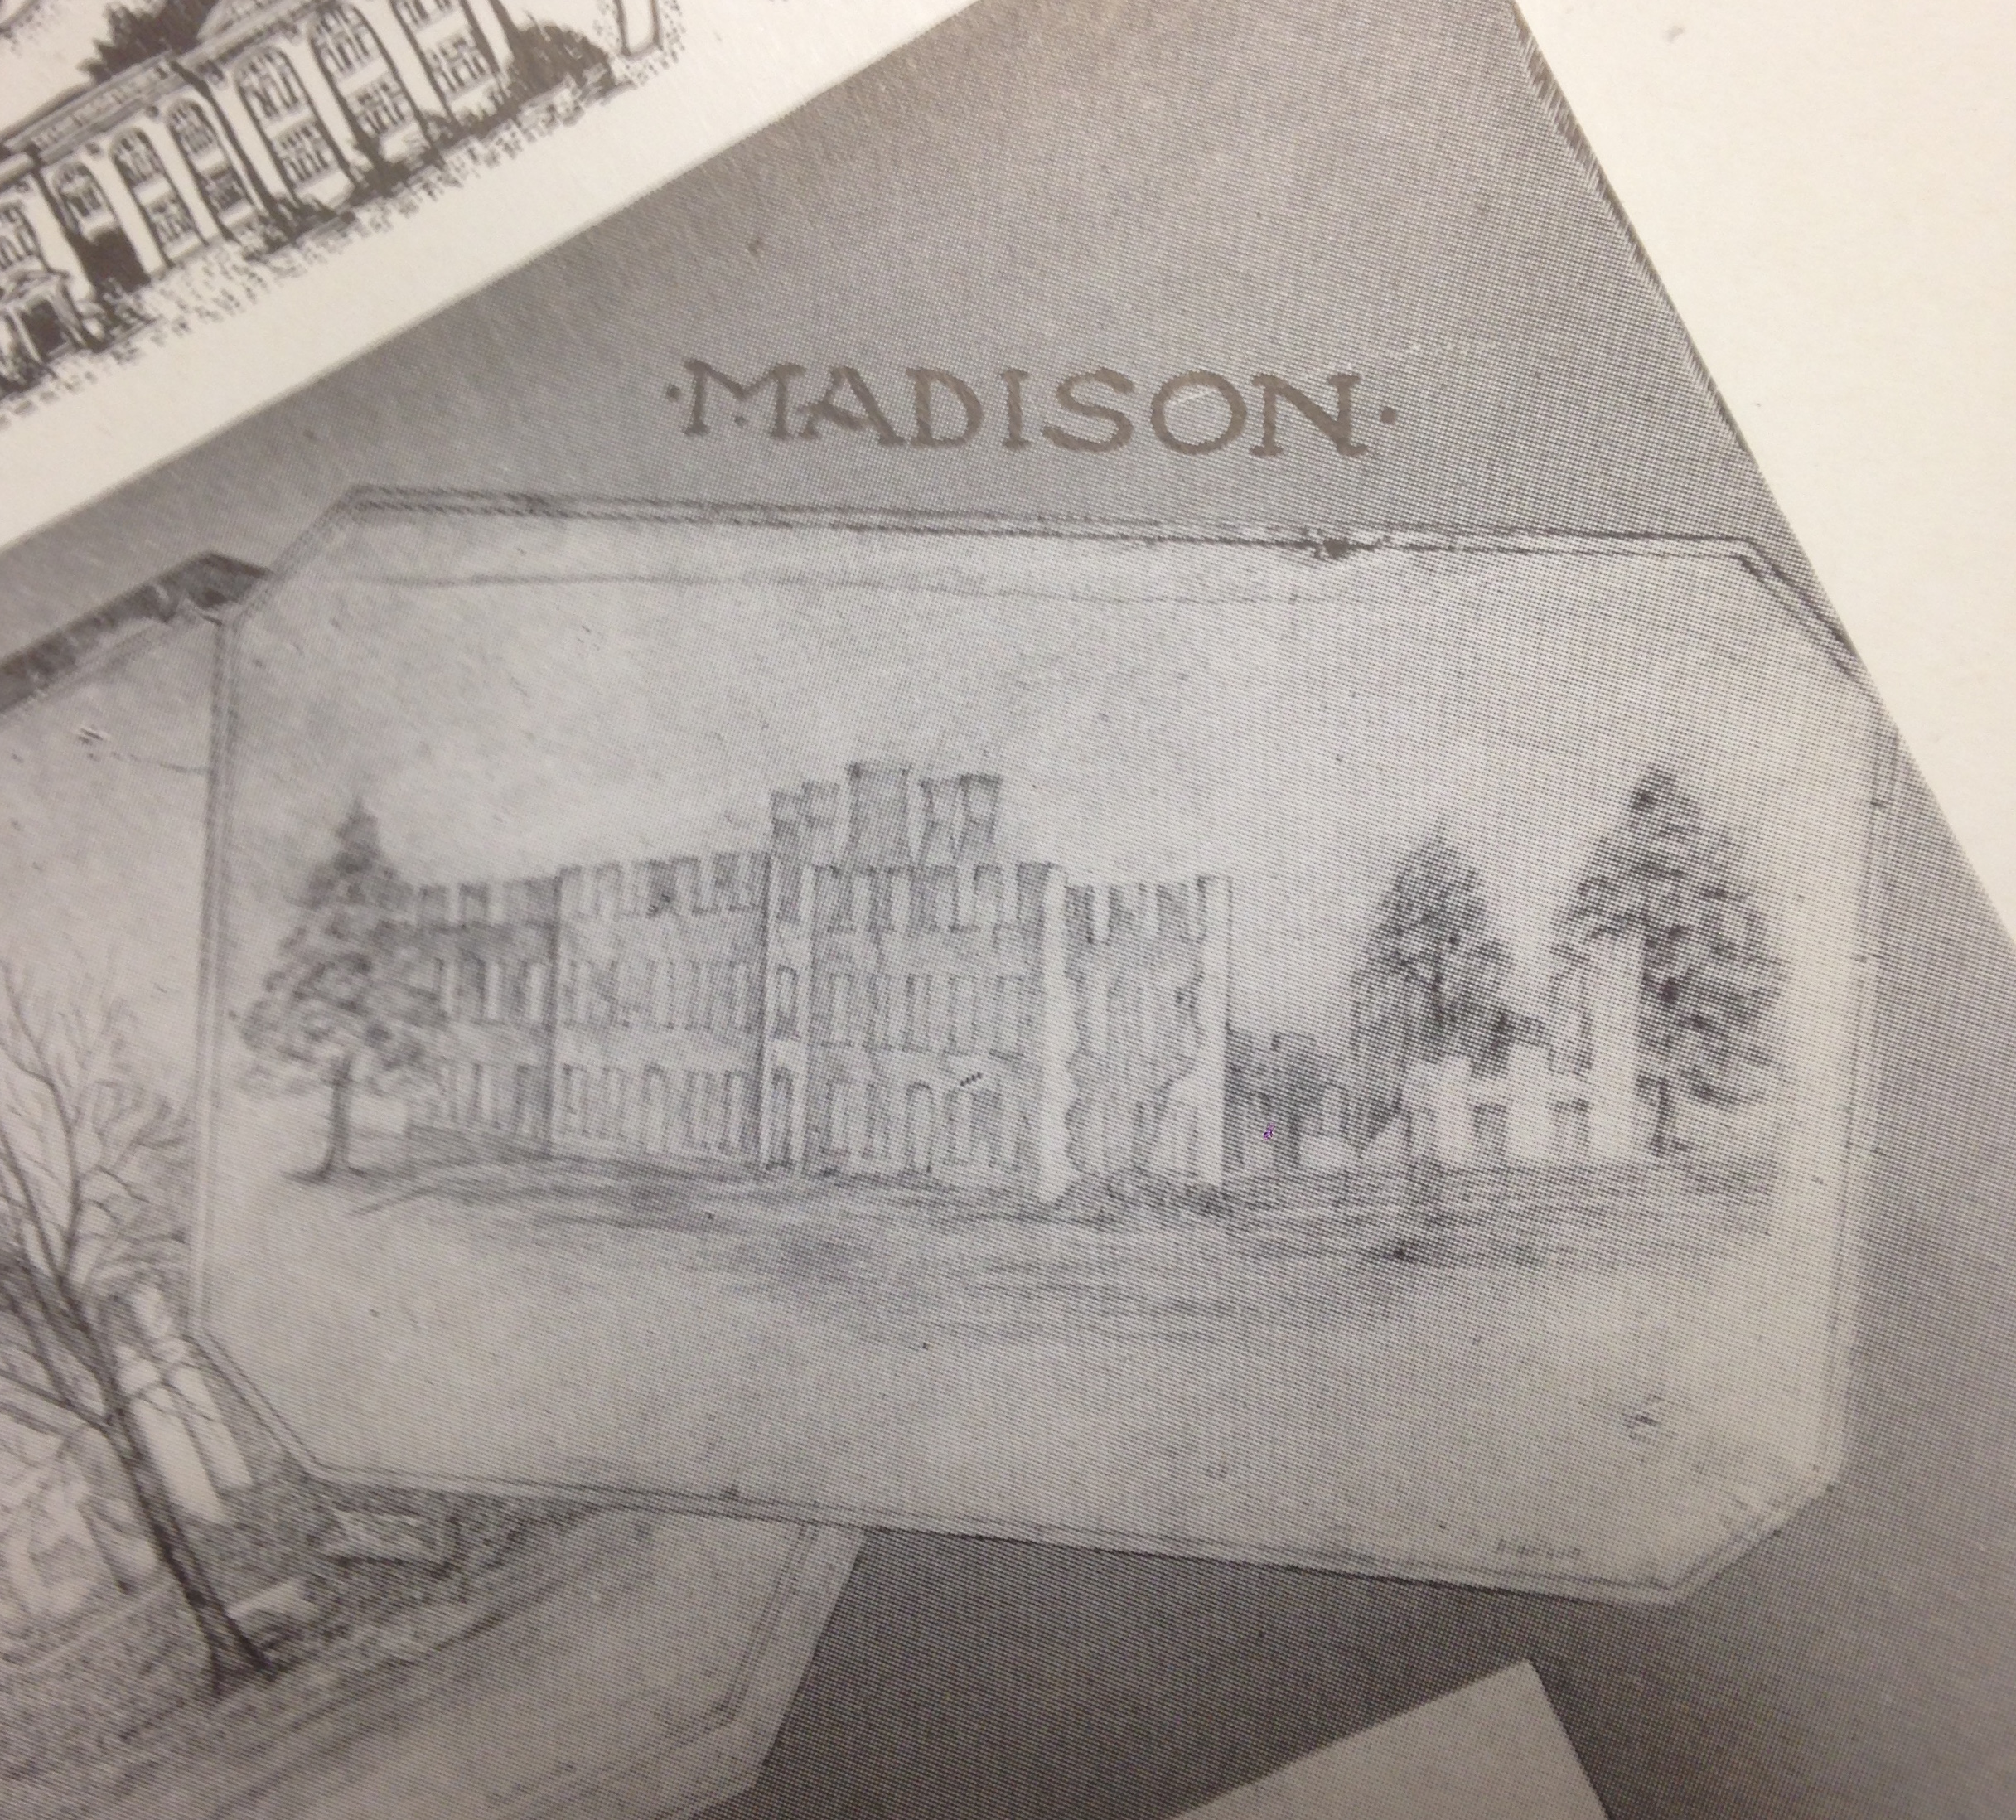 This image has been taken from the 1906 University of Alabama Corolla (W. S. Hoole Special Collections). It shows a sketching of what the ruins Madison Hall perhaps looked after federal troops burned the campus.